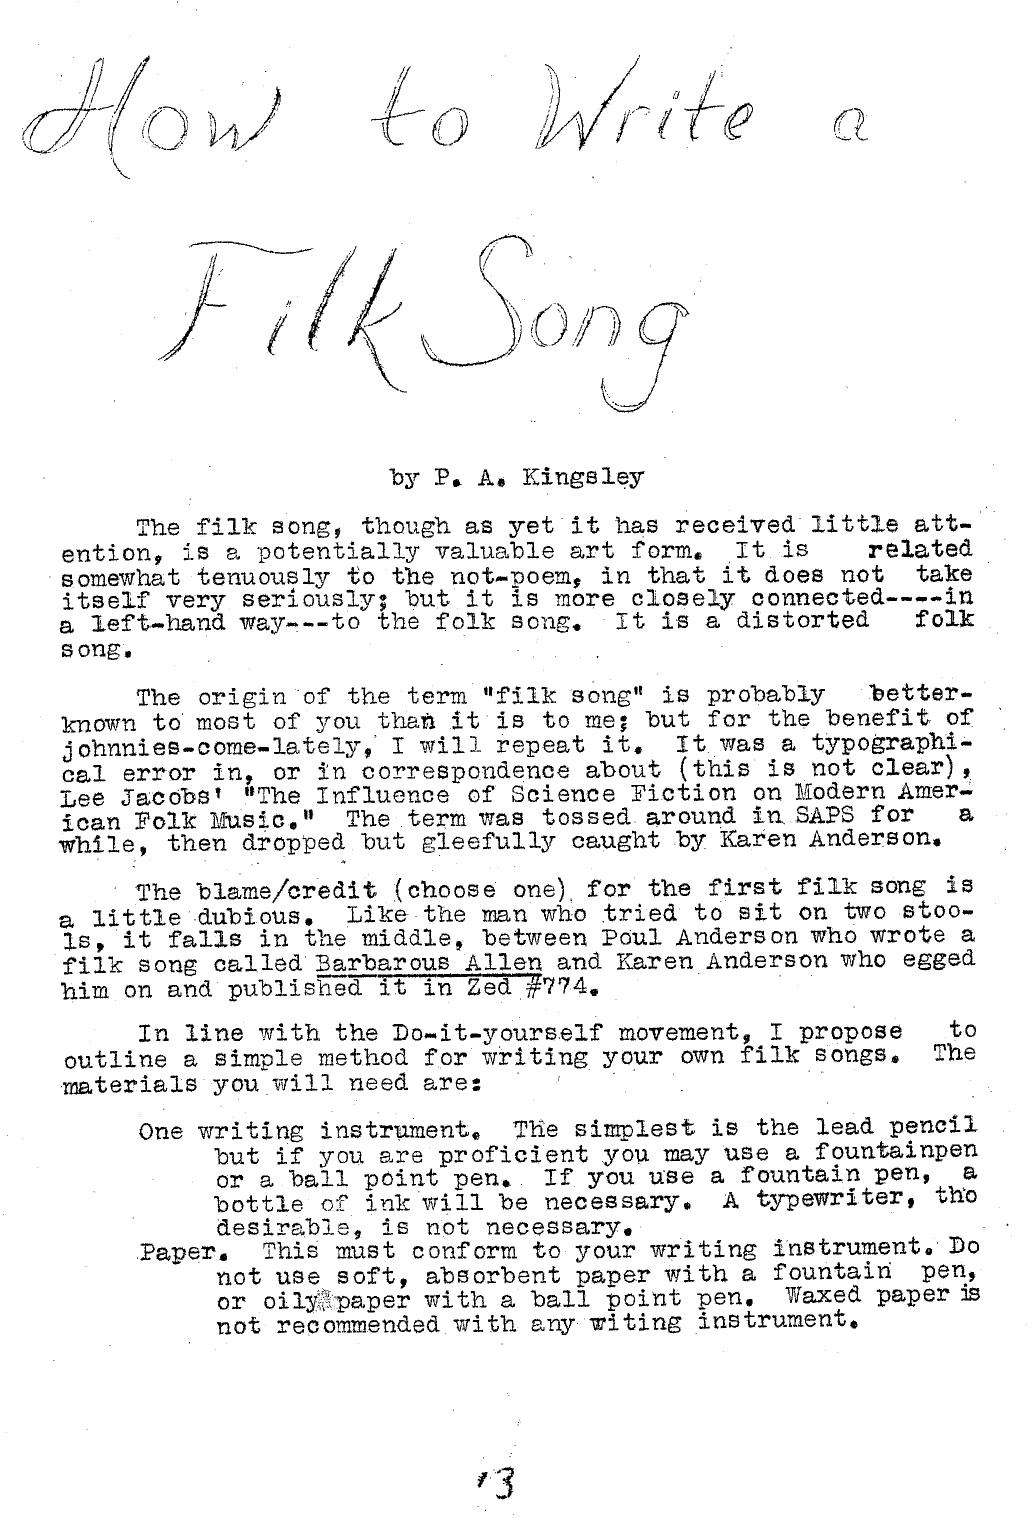 An early document about filk songs.